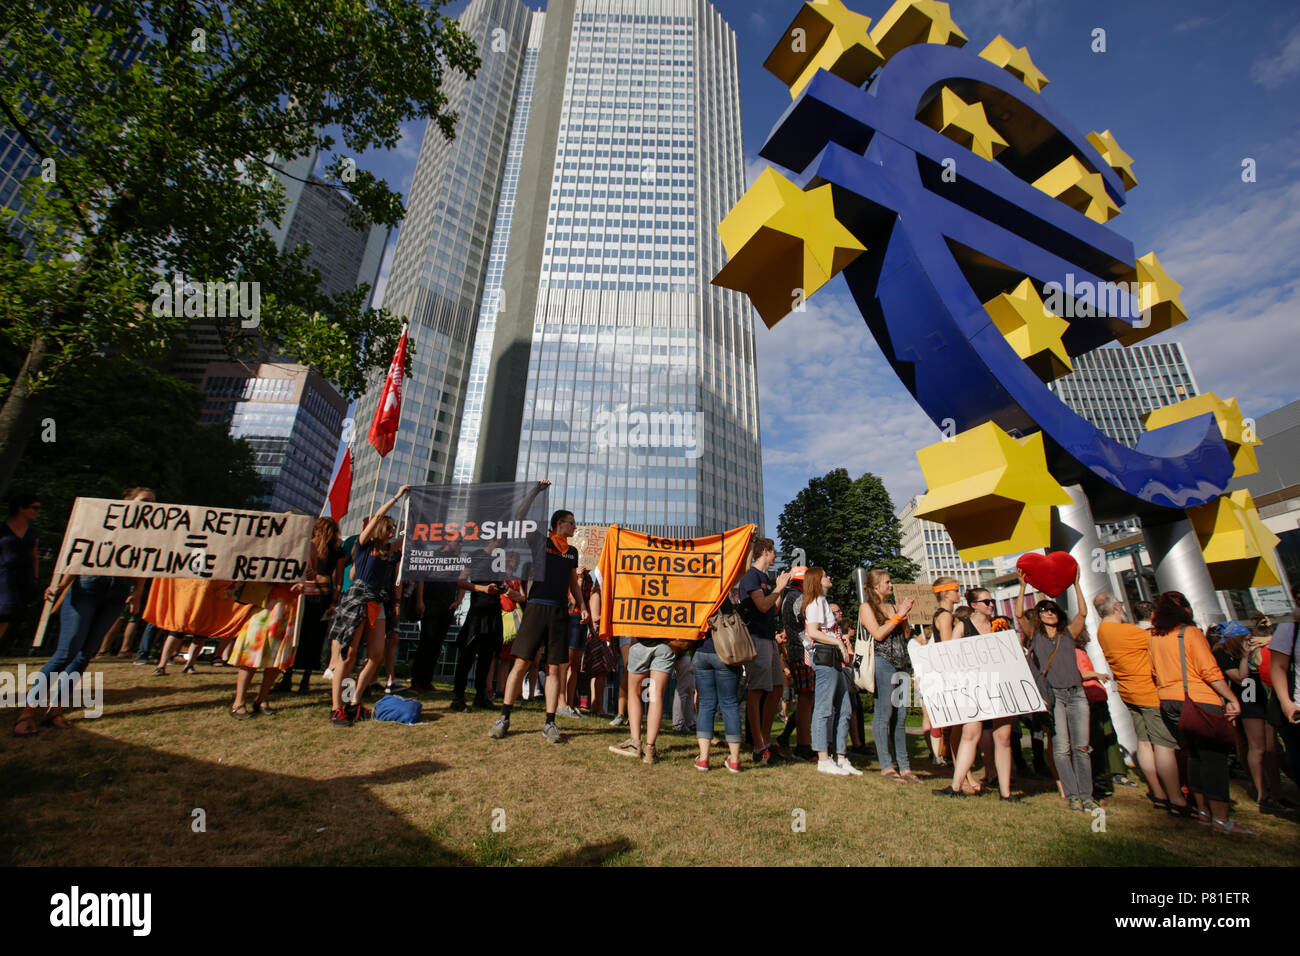 Frankfurt, Germany. 07th July, 2018. Protesters pose with banners and signs at the large Euro sign outside the former seat of the ECB. Around 800 protesters marched through Frankfurt to protest against the politics of the German government and the EU of closed borders and the prevention of sea rescue operations of NGOs, by grounding their ships in Malta, that causes refugees to drown in the Mediterranean. They called for the Mayor of Frankfurt to declare Frankfurt a safe haven city for refugees from the Mediterranean. The protest was part of the German wide Seebrucke (Sea bridge) protest that  Stock Photo